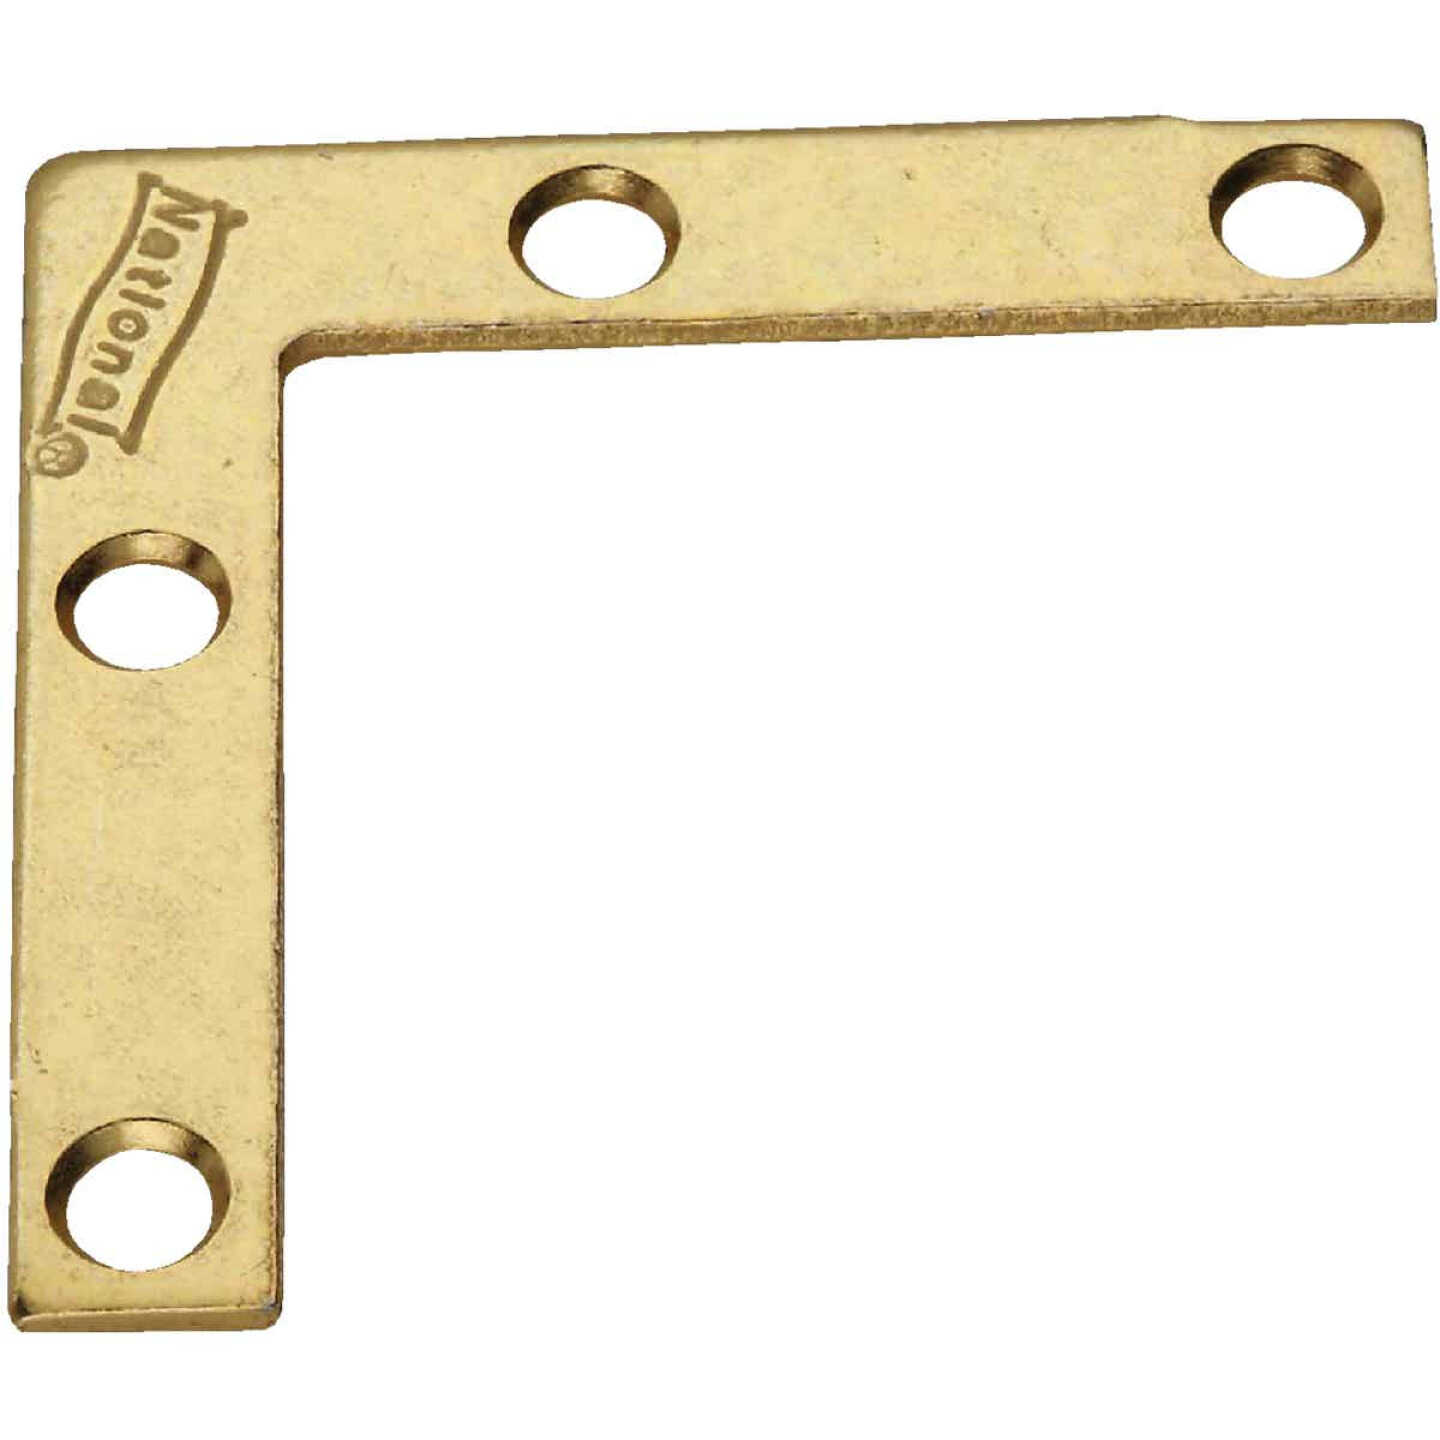 National Catalog 117 2 In. x 3/8 In. Brass Flat Corner Iron (4-Count) Image 1